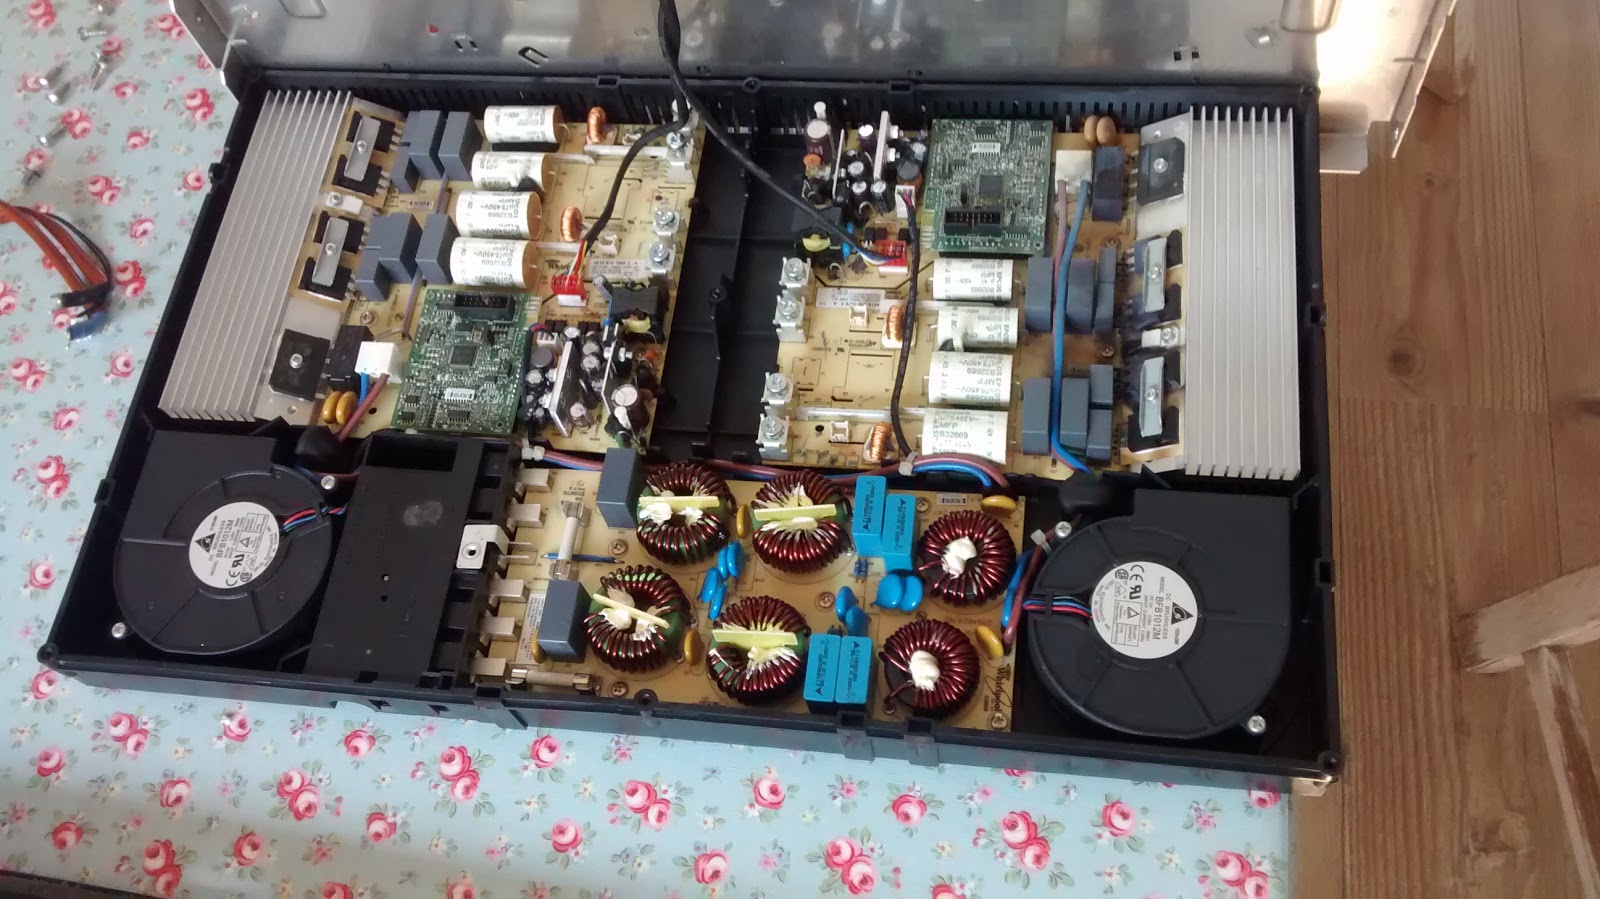 Superior After Unscrewing And Unplugging The Heating Element Wires, I Could Unscrew  The Top Metal Plate, To Get Inside The Box. It Has A Very Symmetrical  Layout, ...